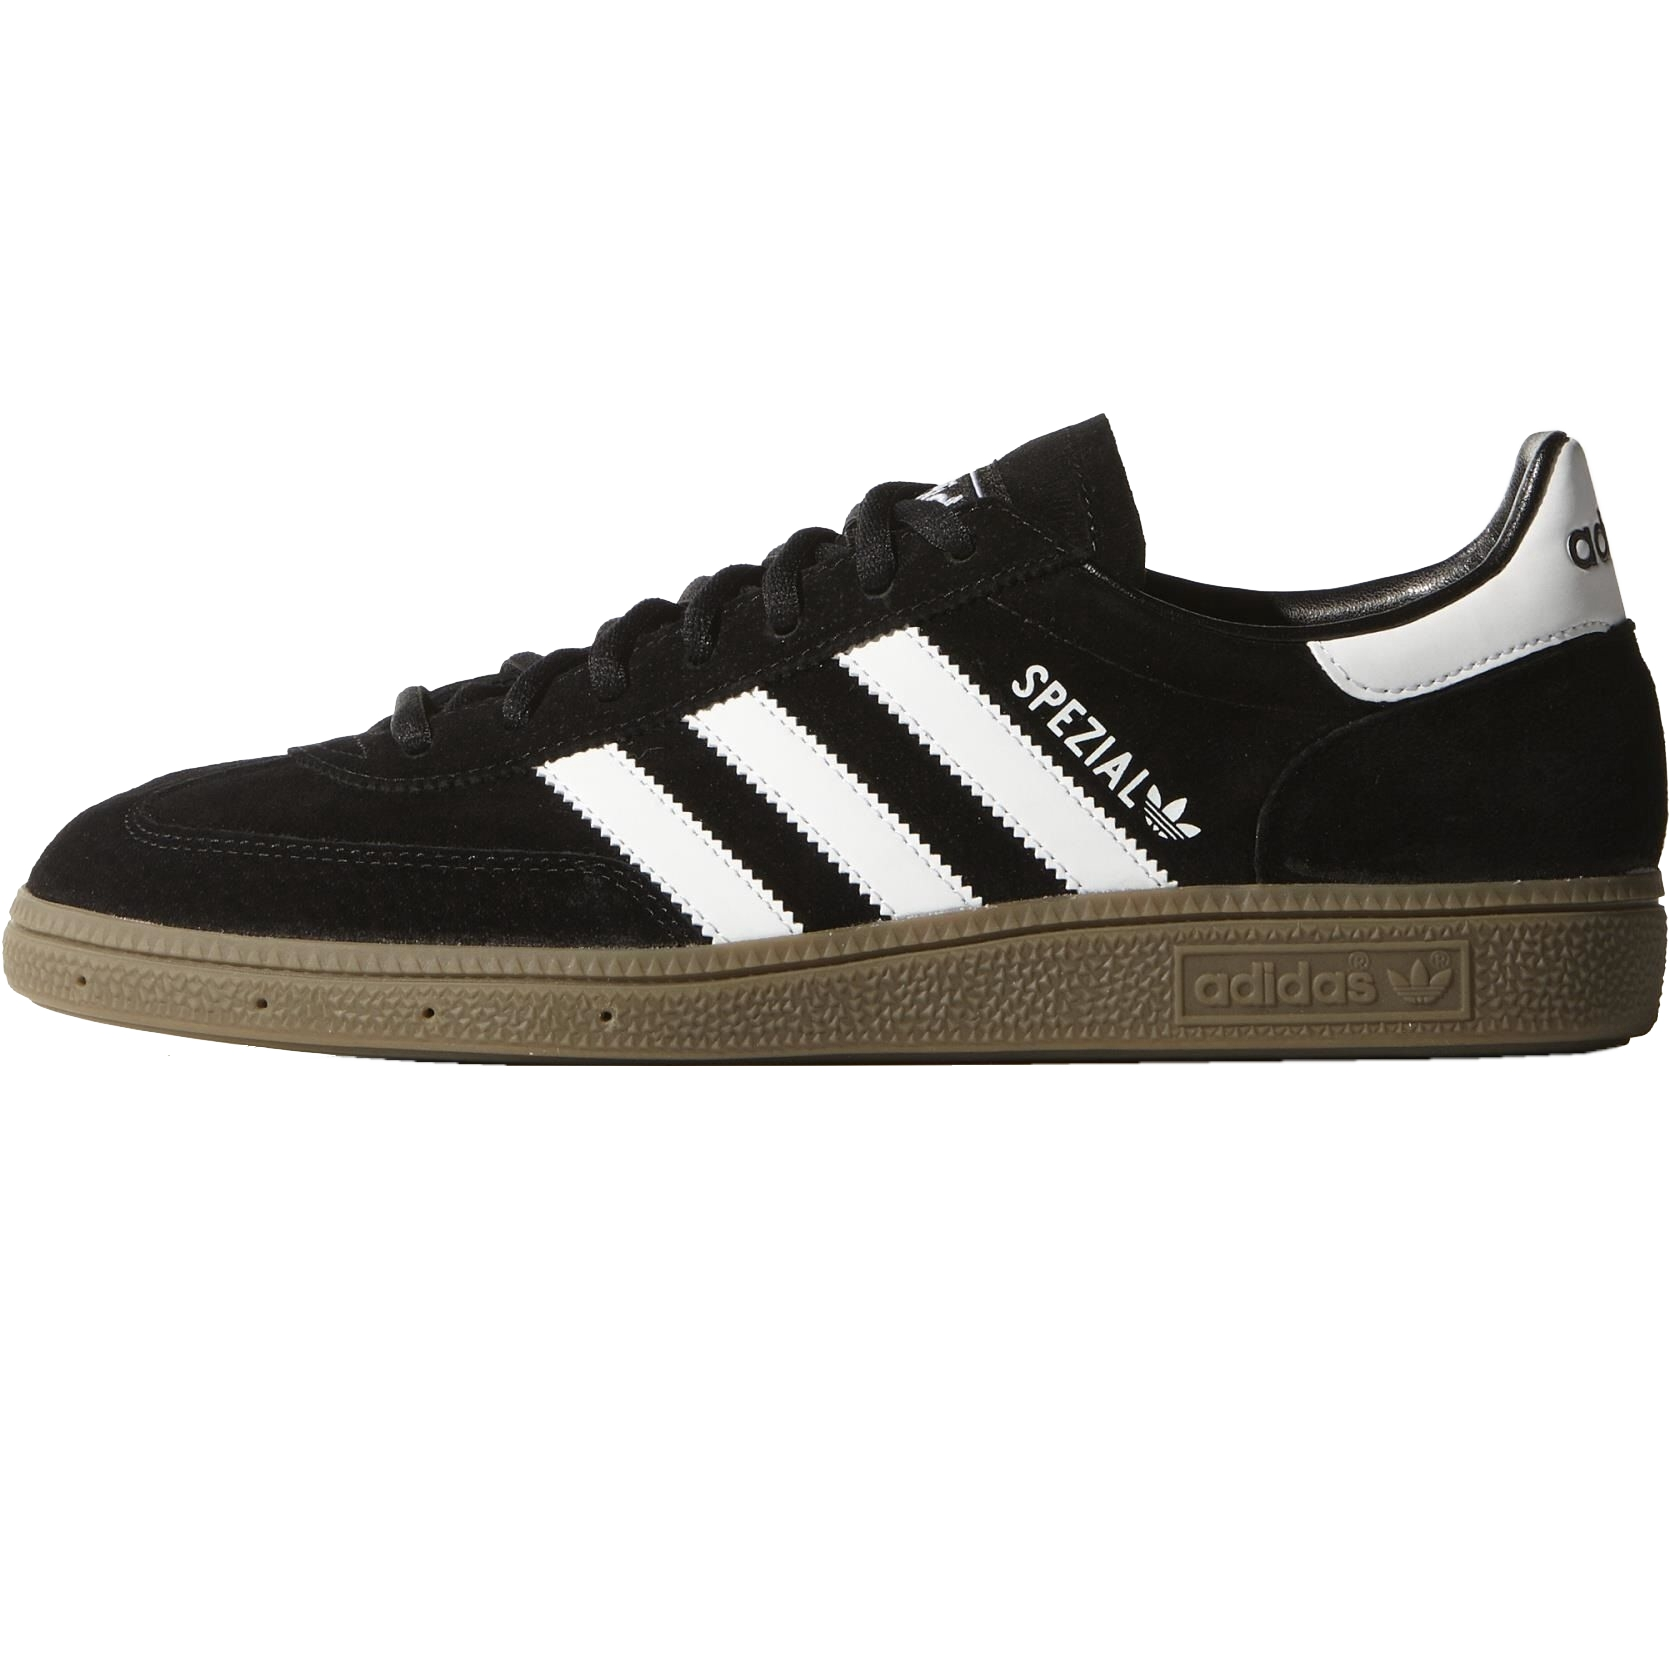 about adidas spezial sneaker schuhe unisex various colours shoes uk. Black Bedroom Furniture Sets. Home Design Ideas